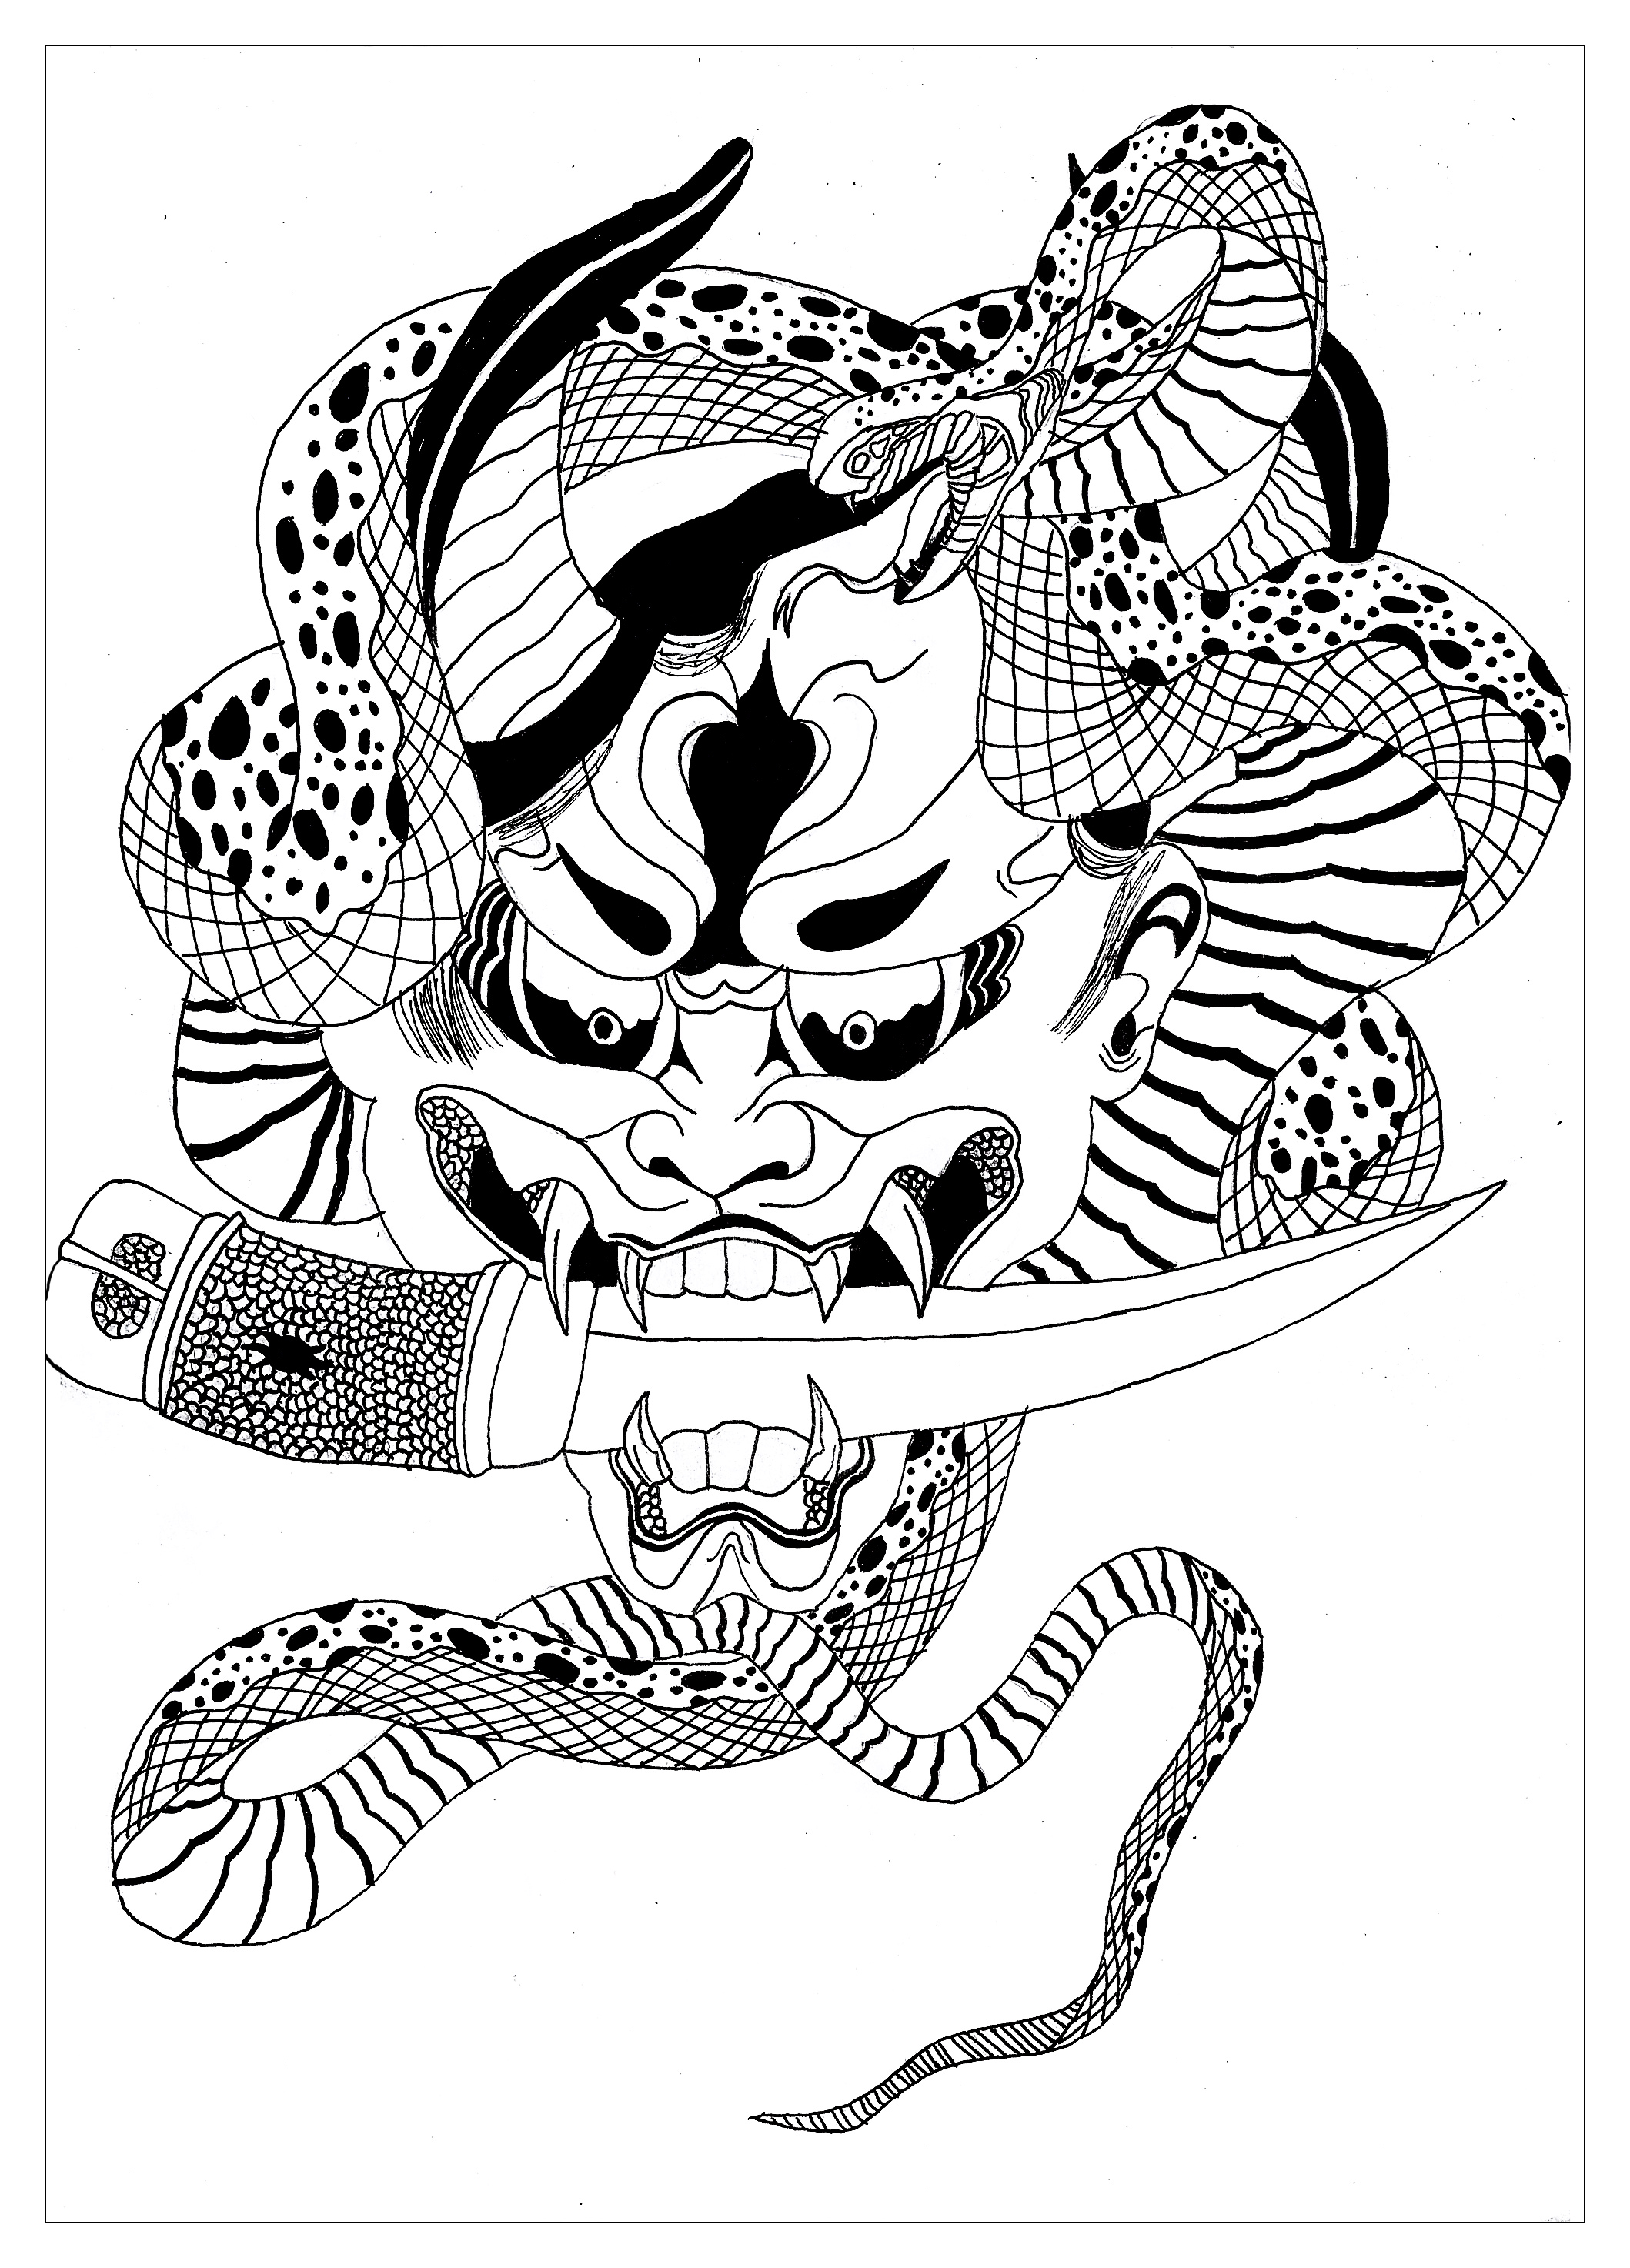 Coloring Page Of A Japanese Hannya Mask